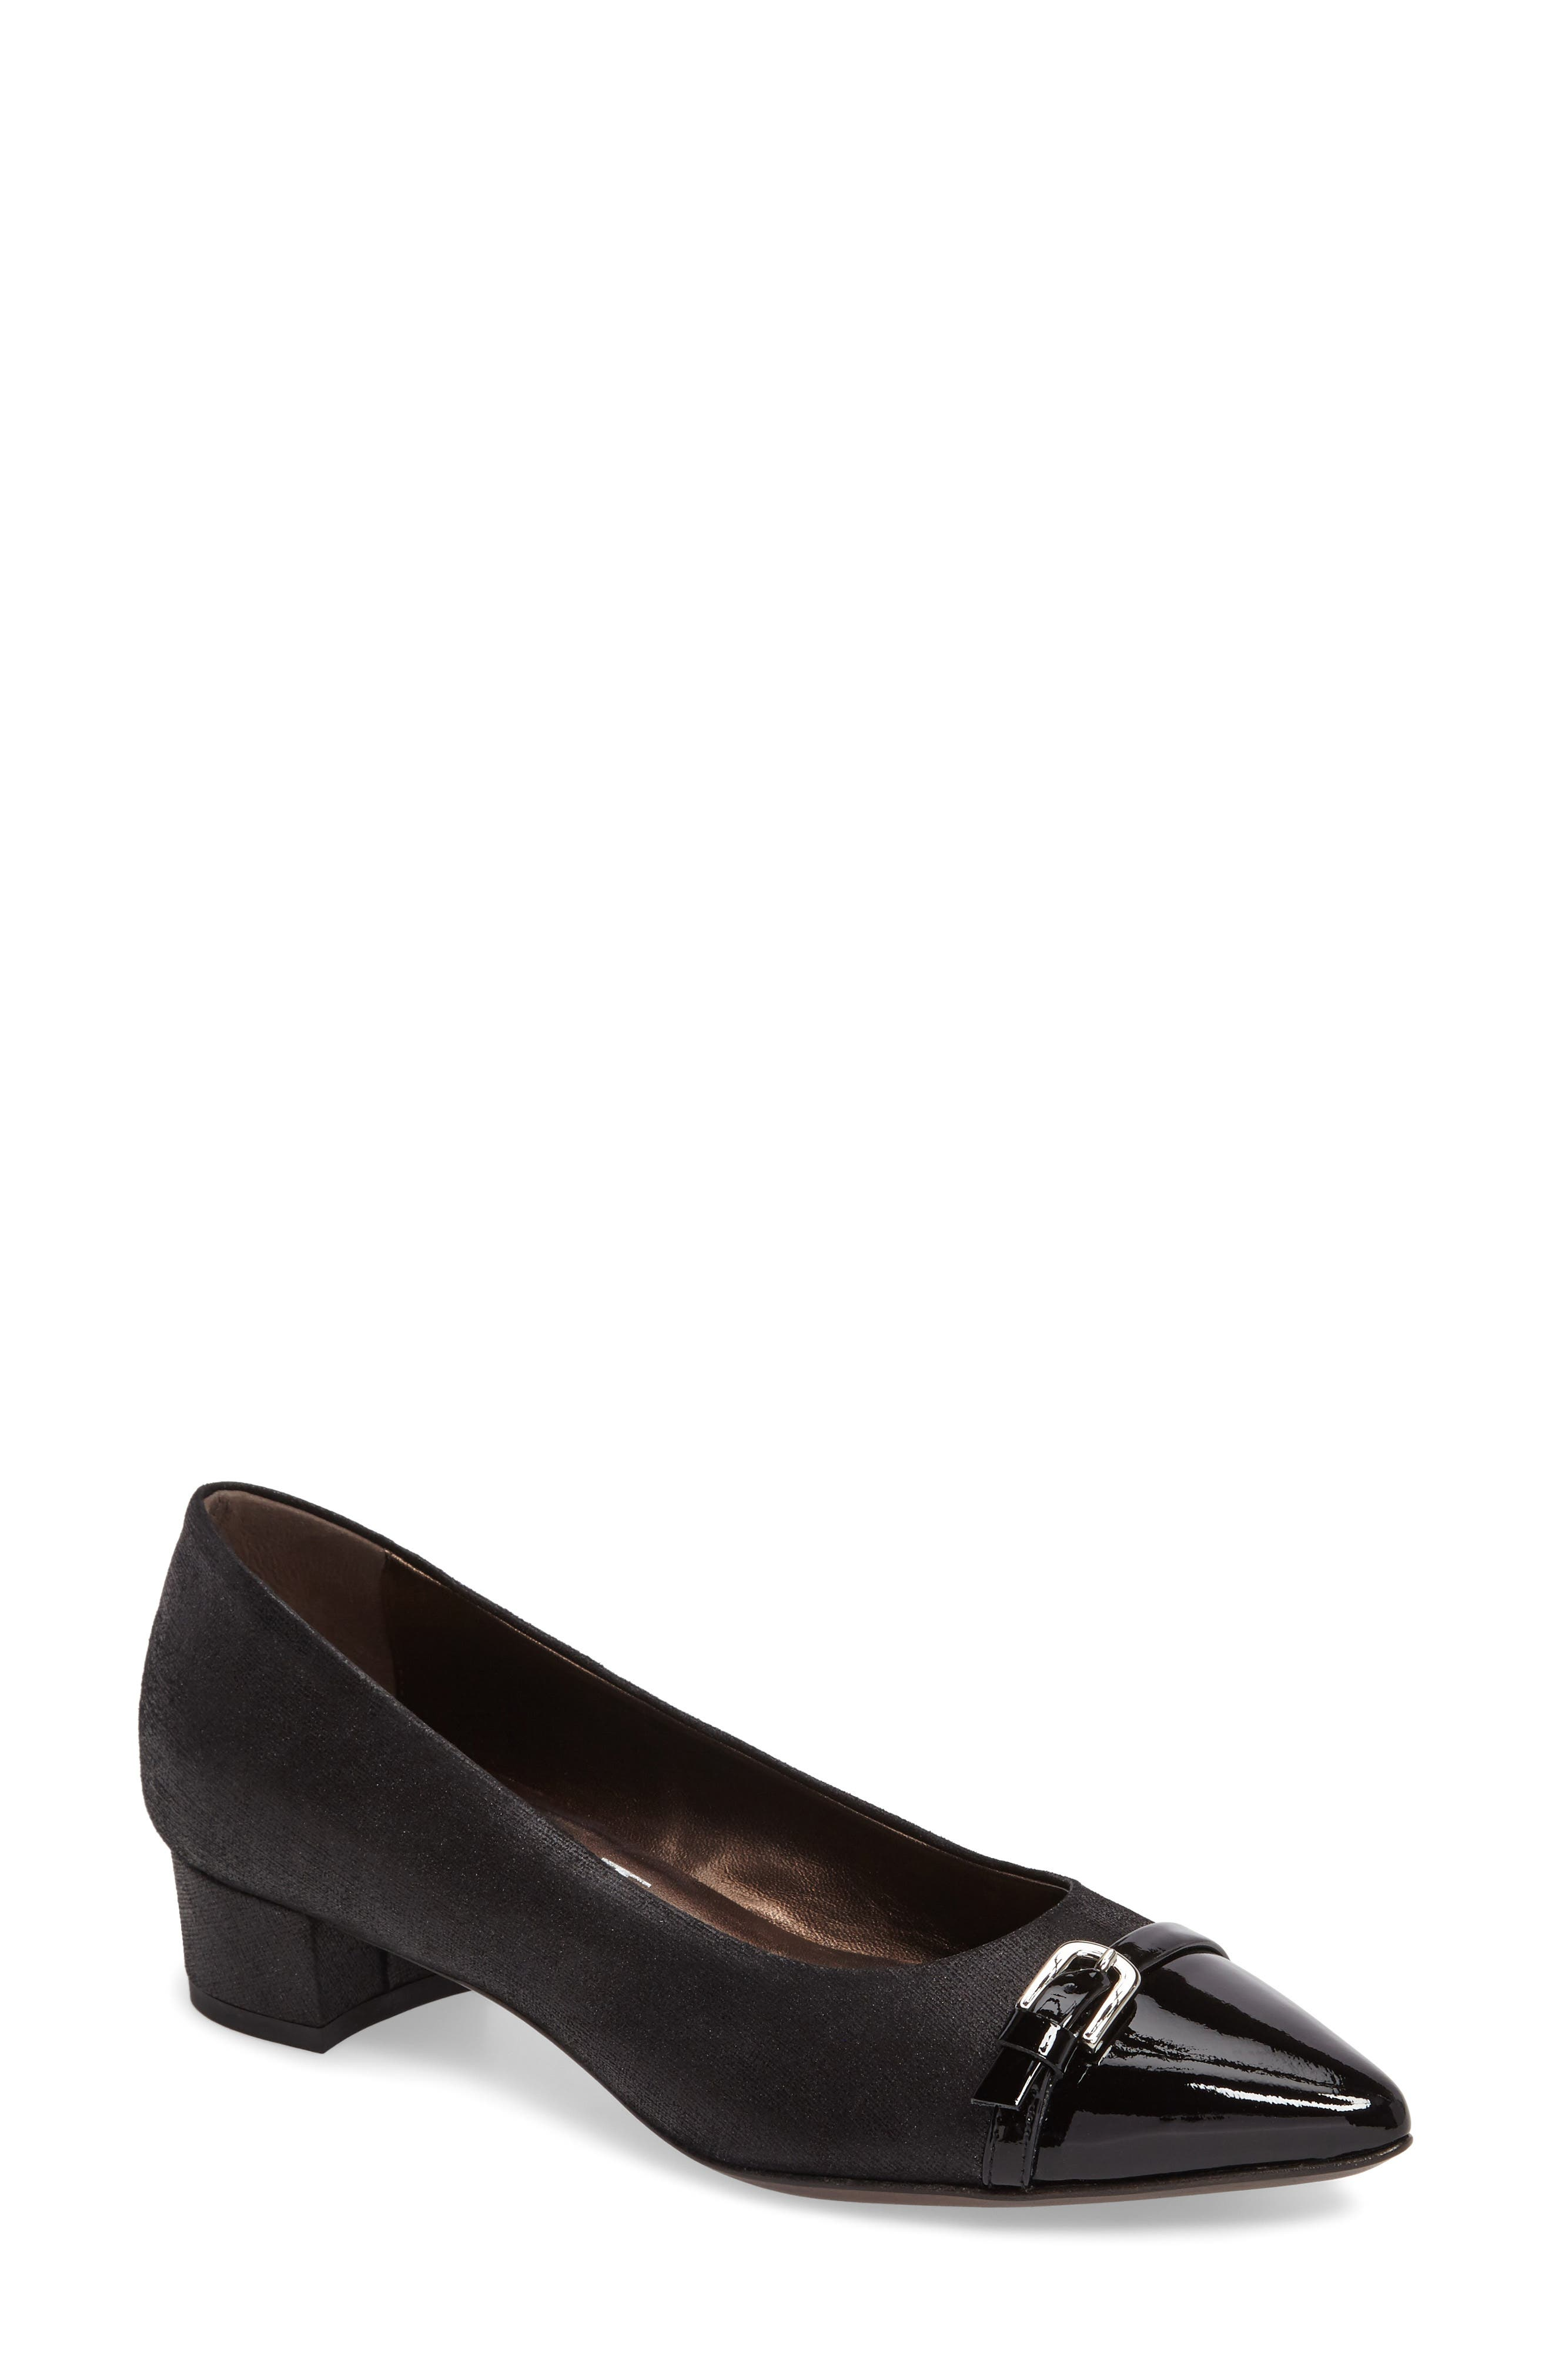 Belted Block Heel Pump,                         Main,                         color, 001